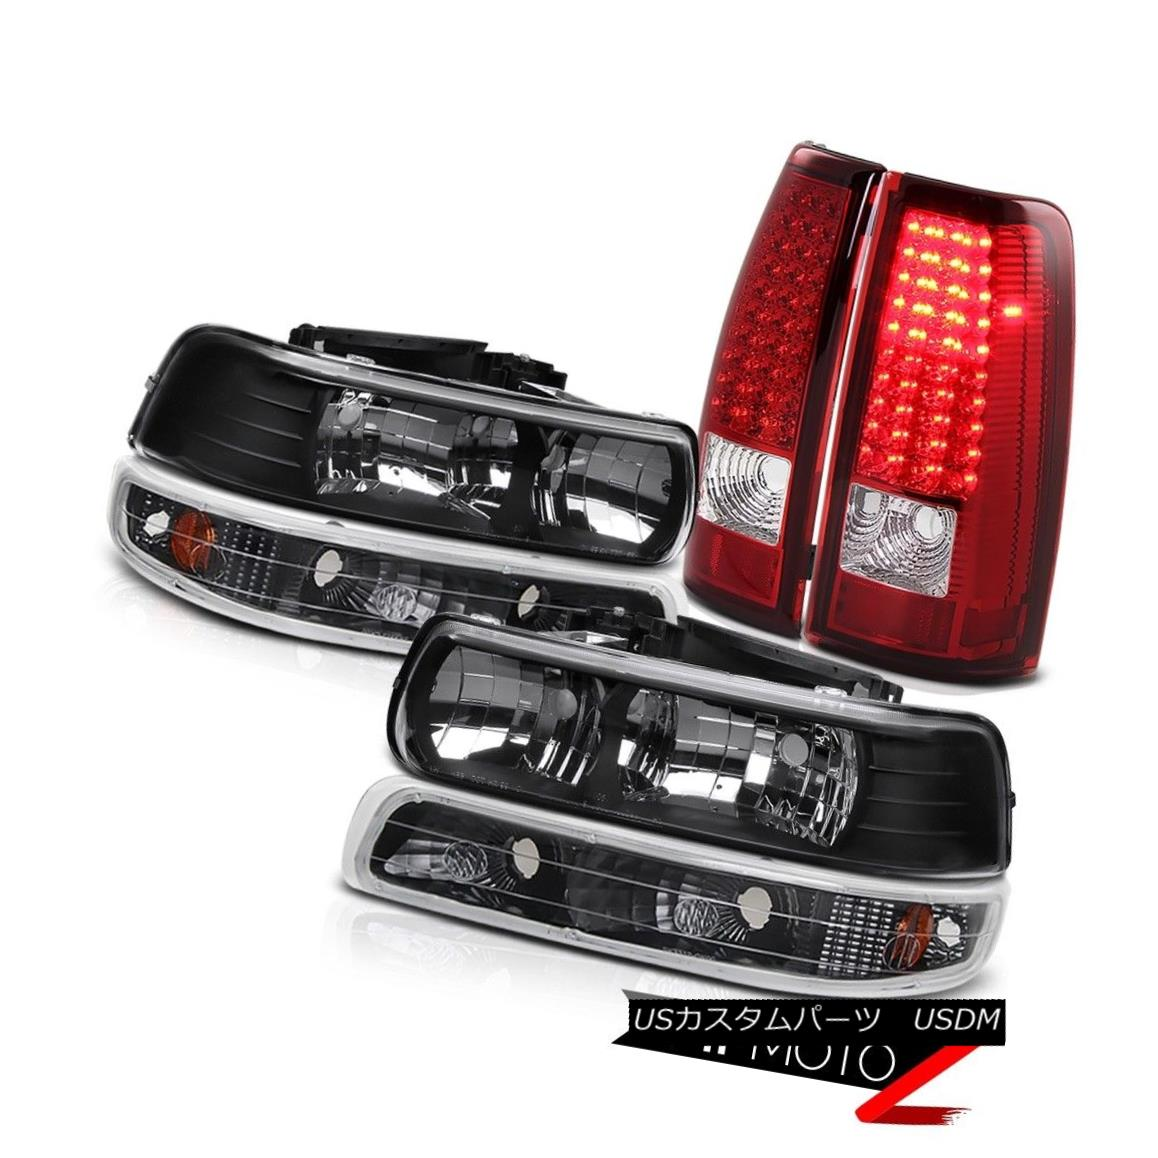 テールライト Chevy Silverado 99-02 1500/2500 Black Headlight+Bumper+RED/CLEAR LED Tail Light Chevy Silverado 99-02 1500/2500ブラックヘッドライト+バンプ er + RED / CLEAR LEDテールライト